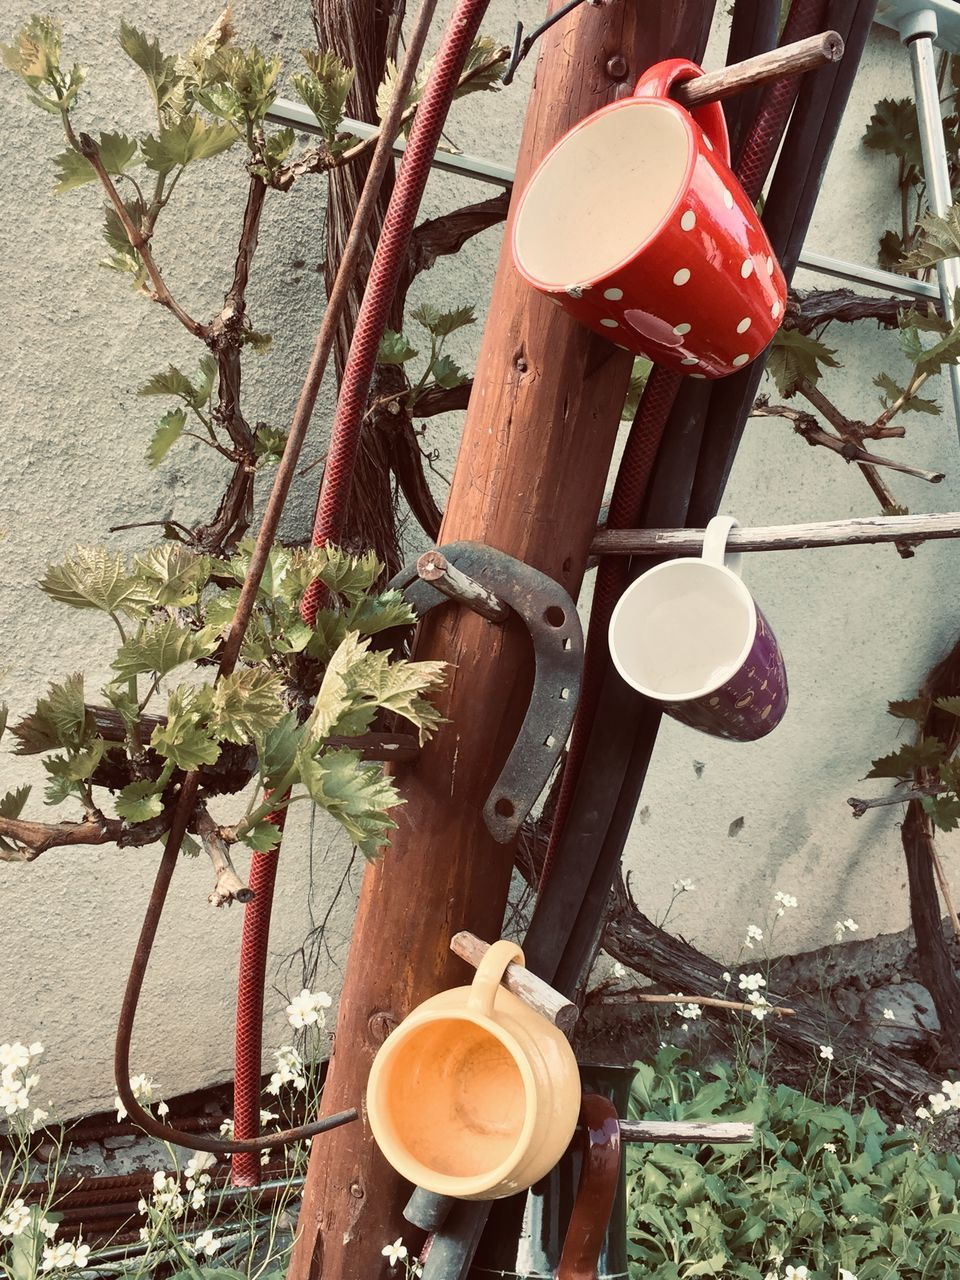 plant, no people, nature, lighting equipment, cup, hanging, drink, growth, mug, tree, food and drink, day, close-up, refreshment, outdoors, household equipment, coffee cup, high angle view, pour spout, crockery, tea cup, electric lamp